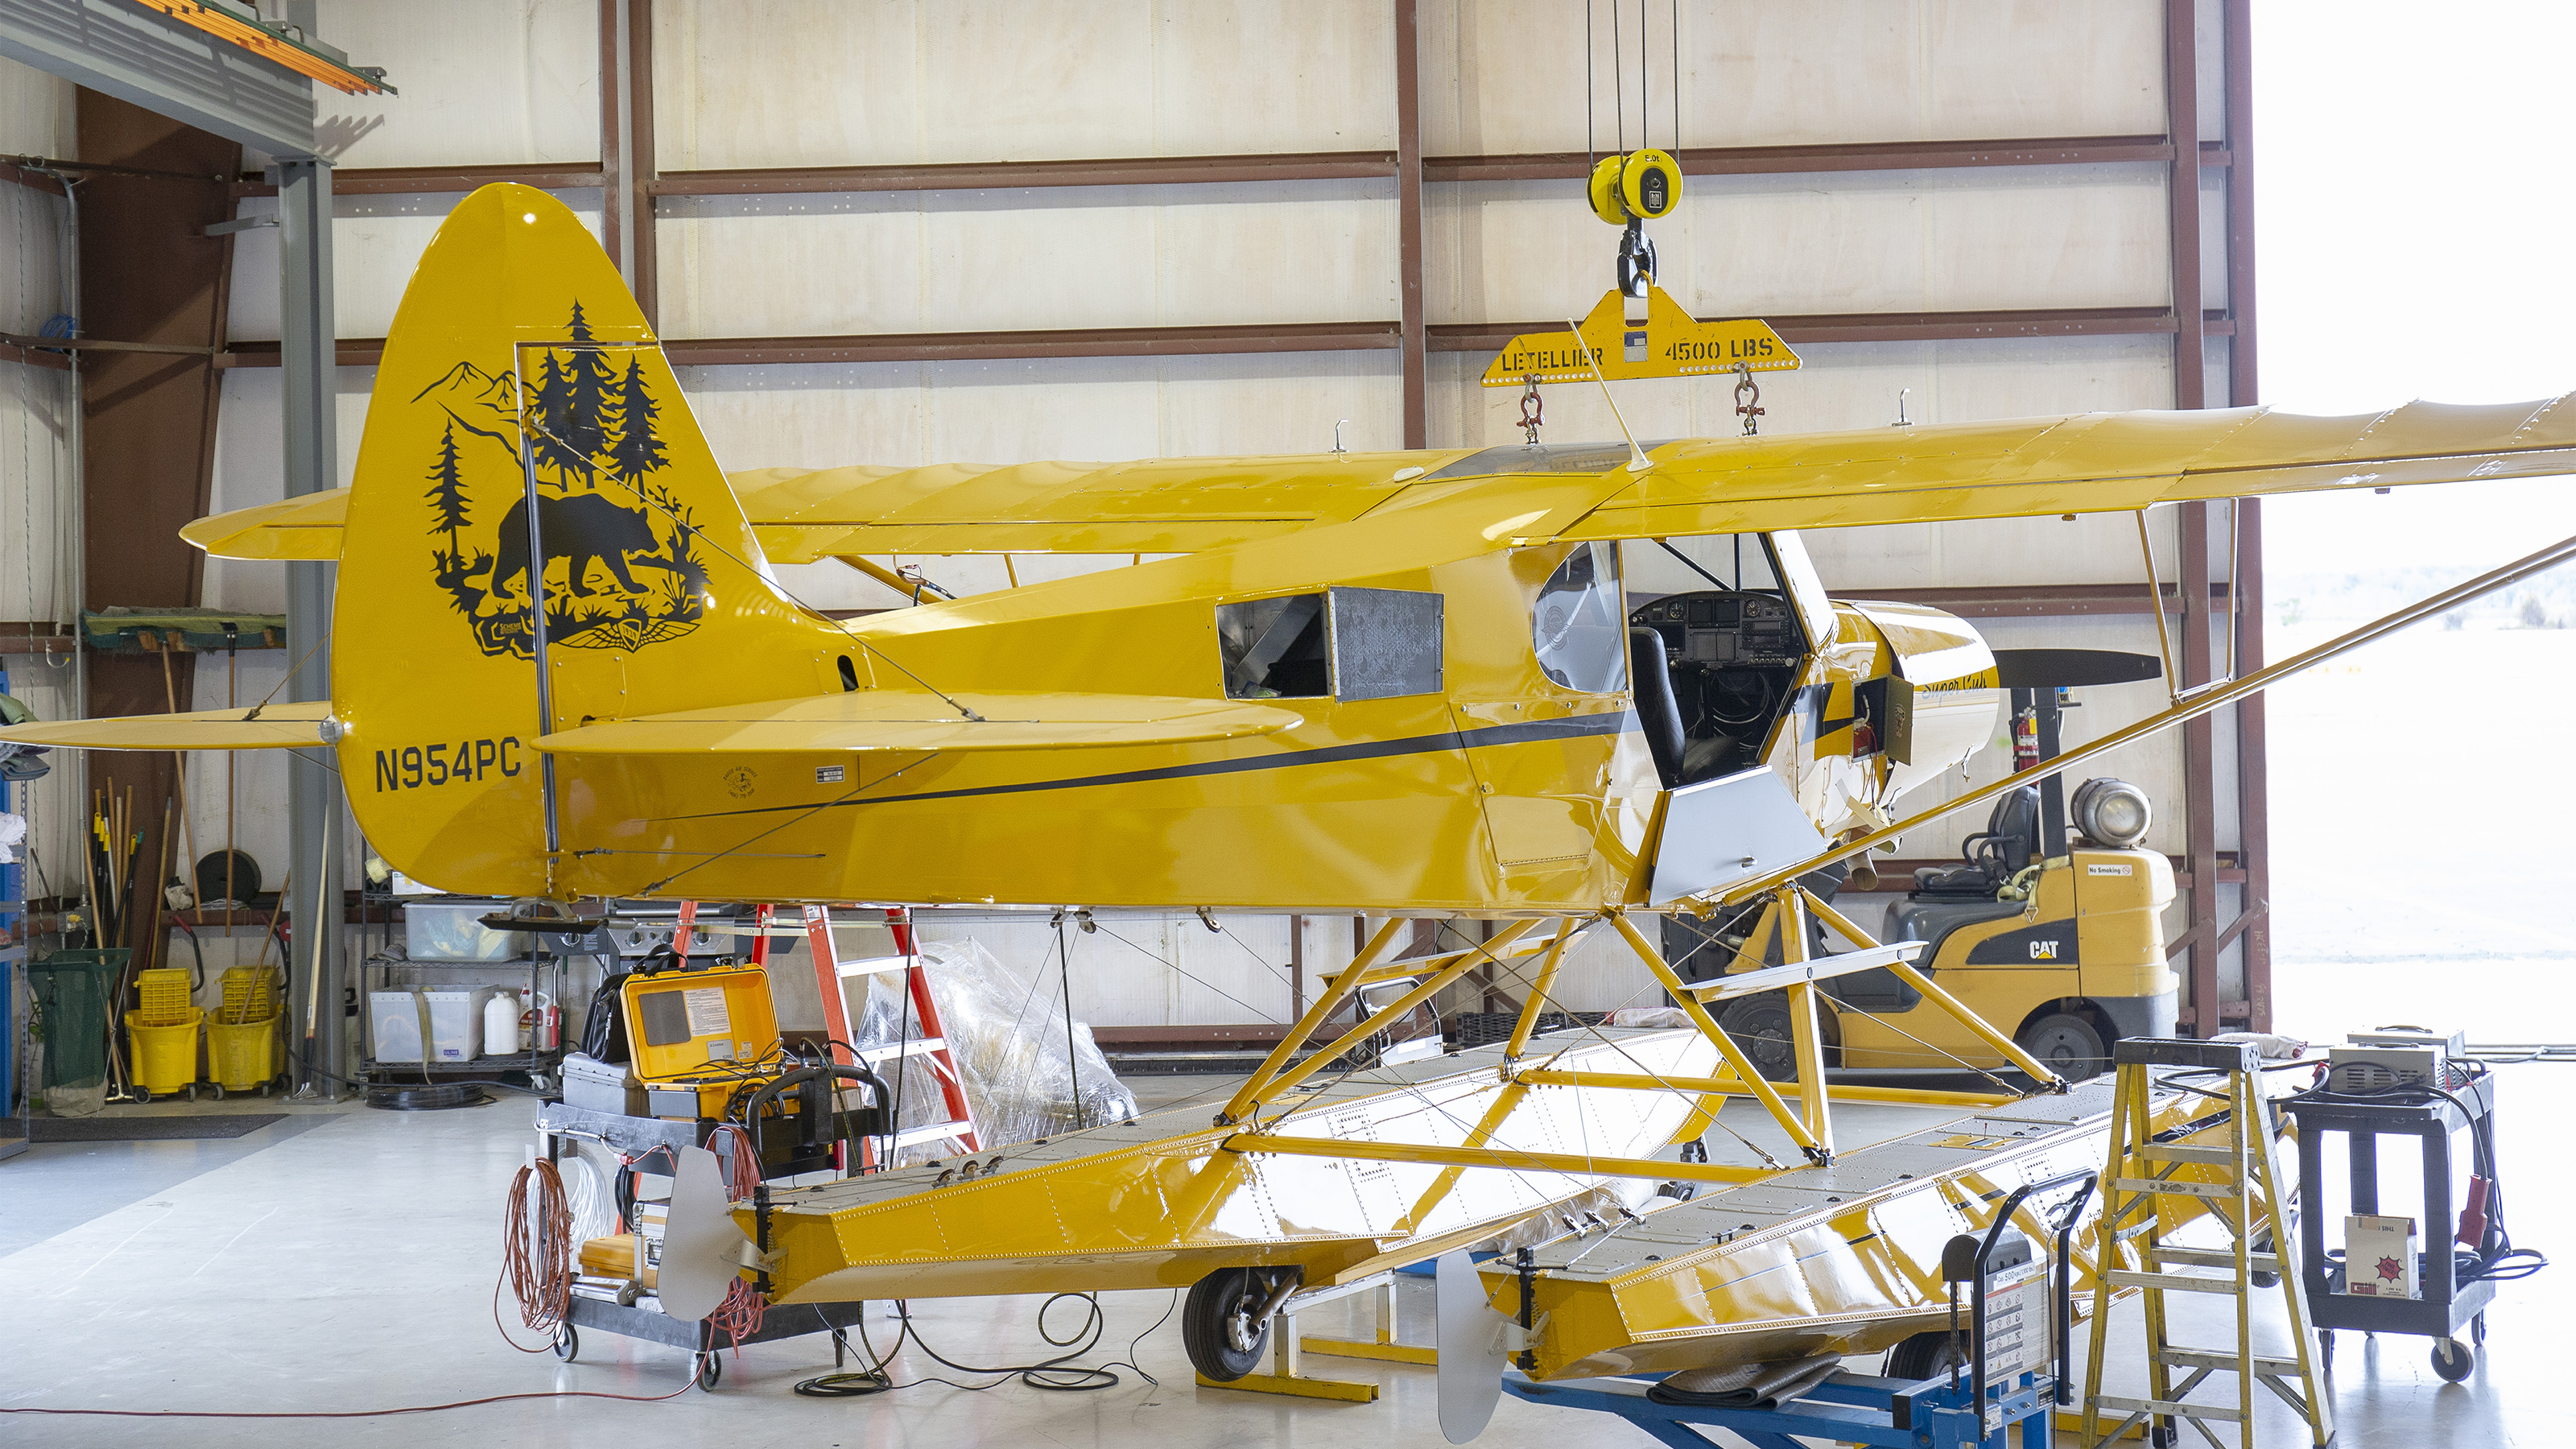 The Wipline 2100 amphibious floats match the Super Cub's Lock Haven Yellow paint perfectly because Wipaire scanned the airplane this summer to ensure a flawless match.